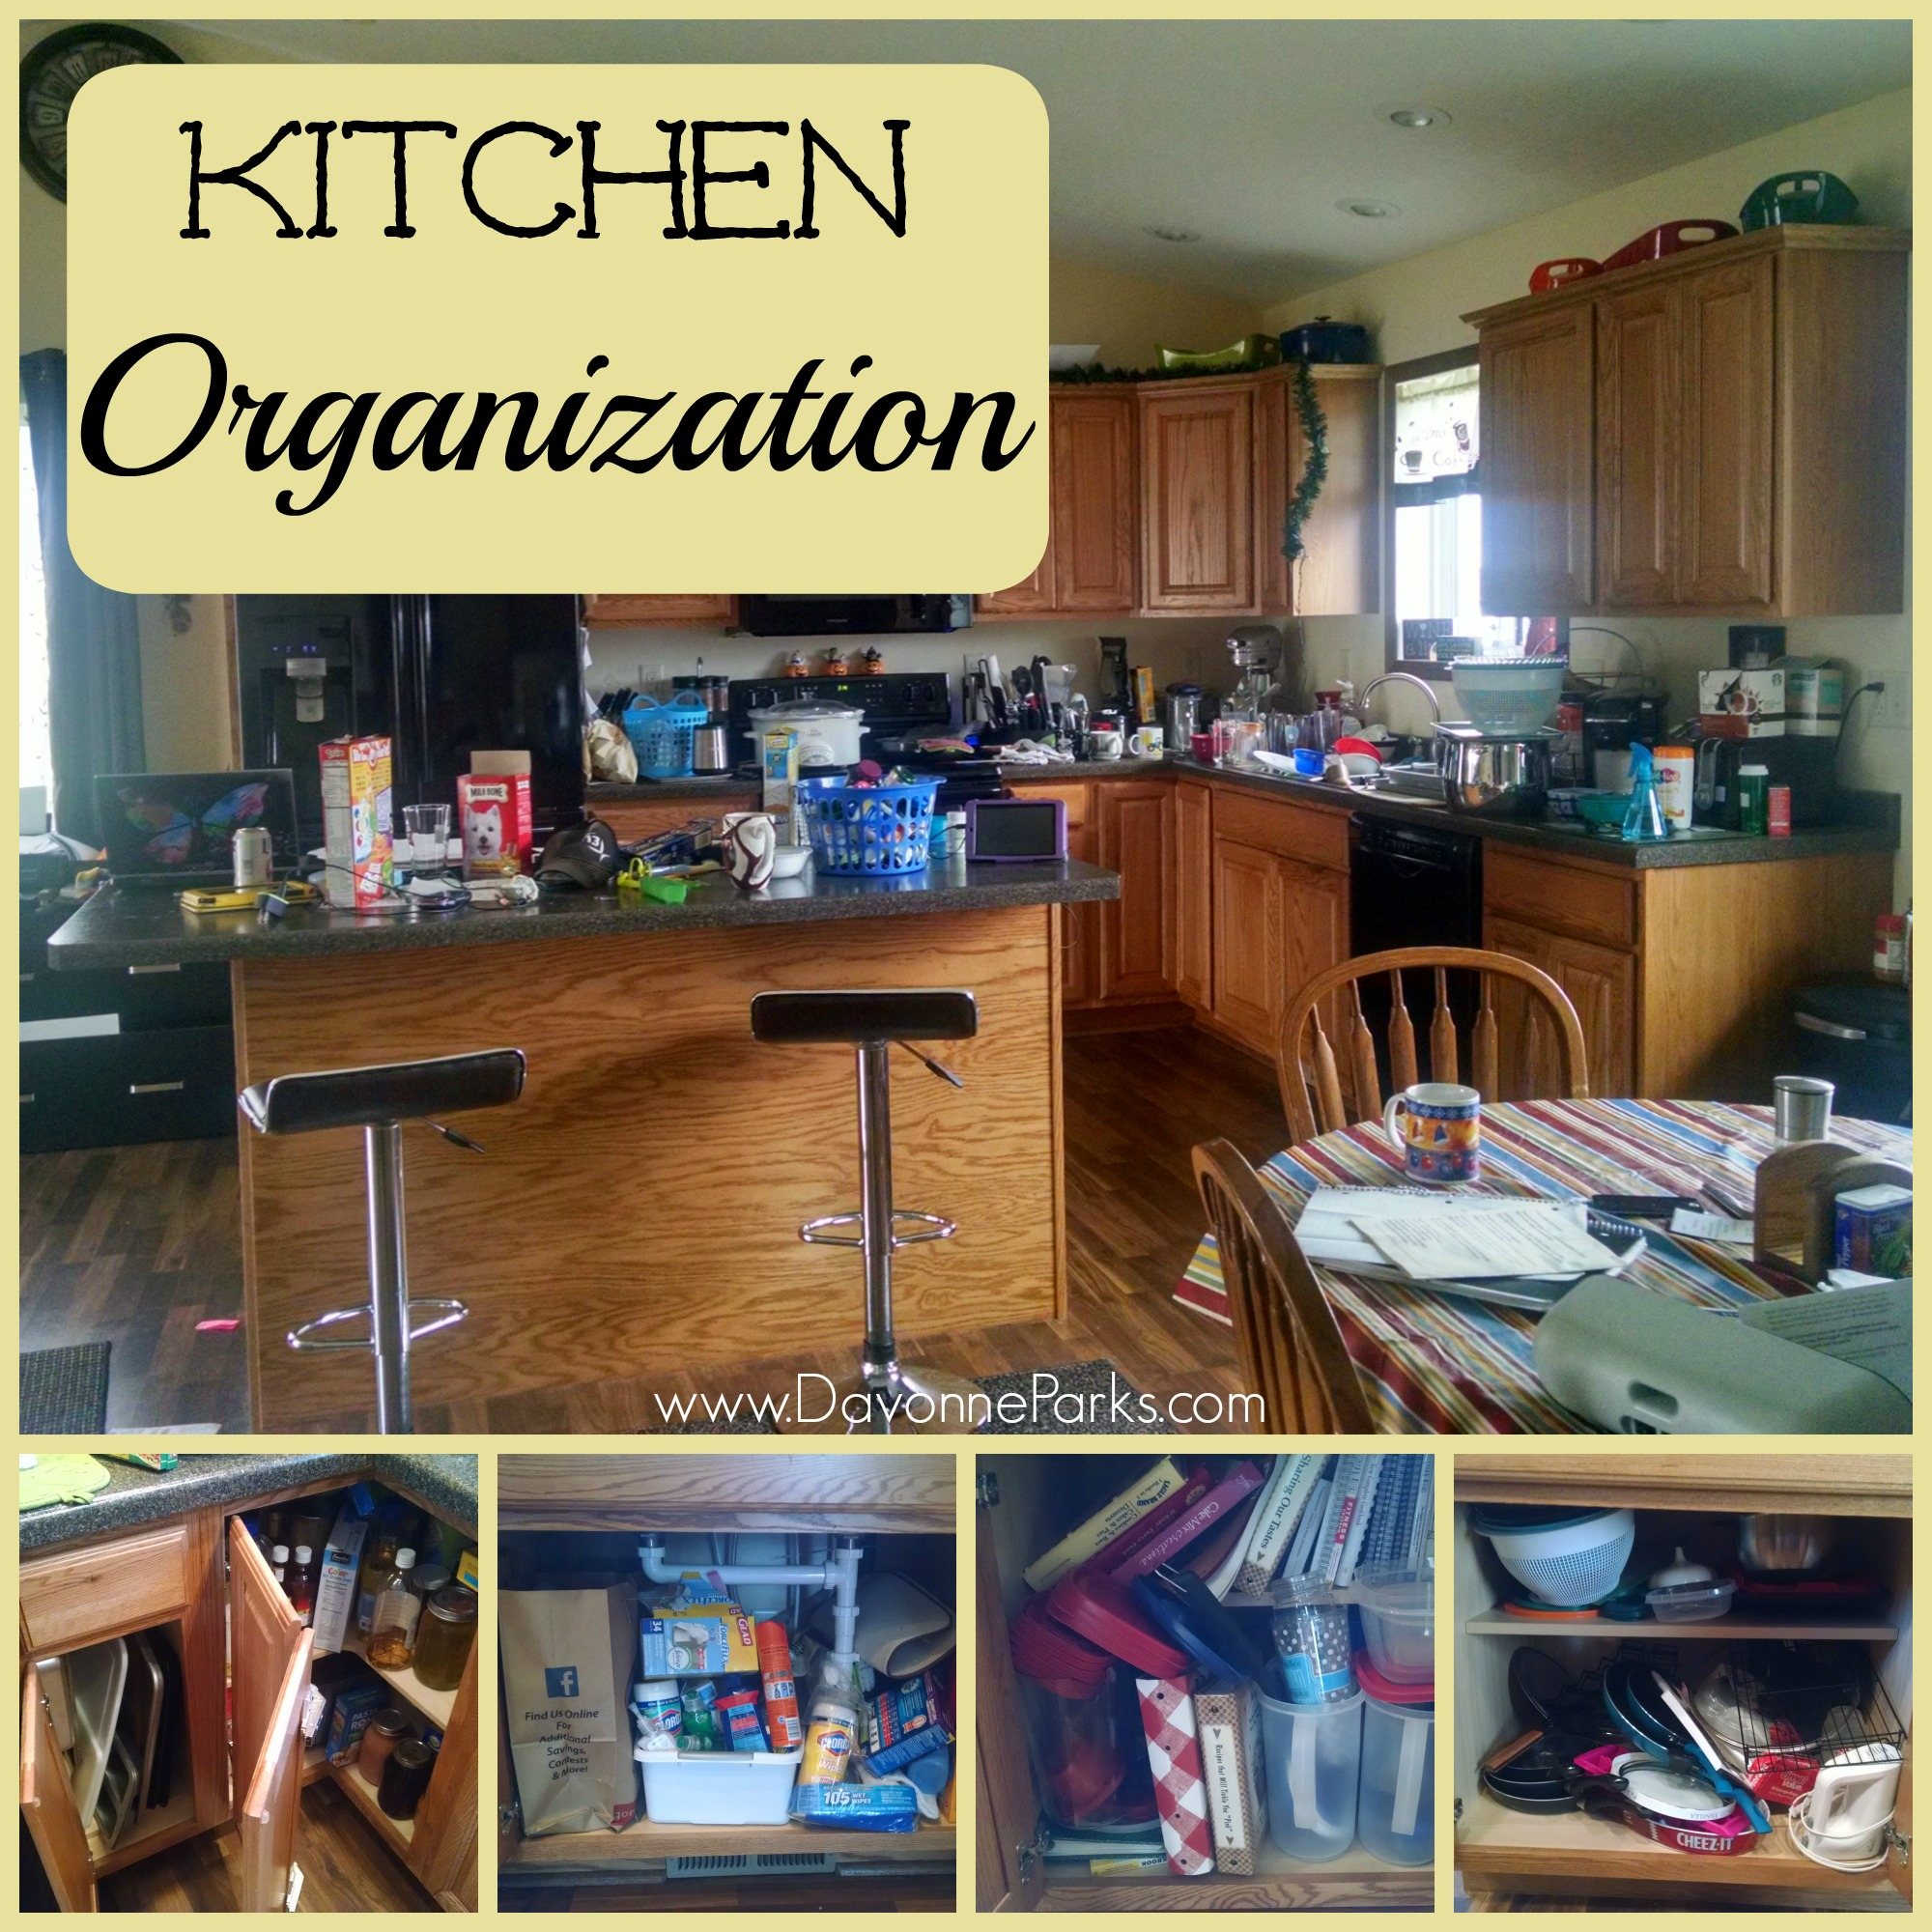 Organization For Kitchen Cabinets: Organizing Kitchen Cabinets & Countertops